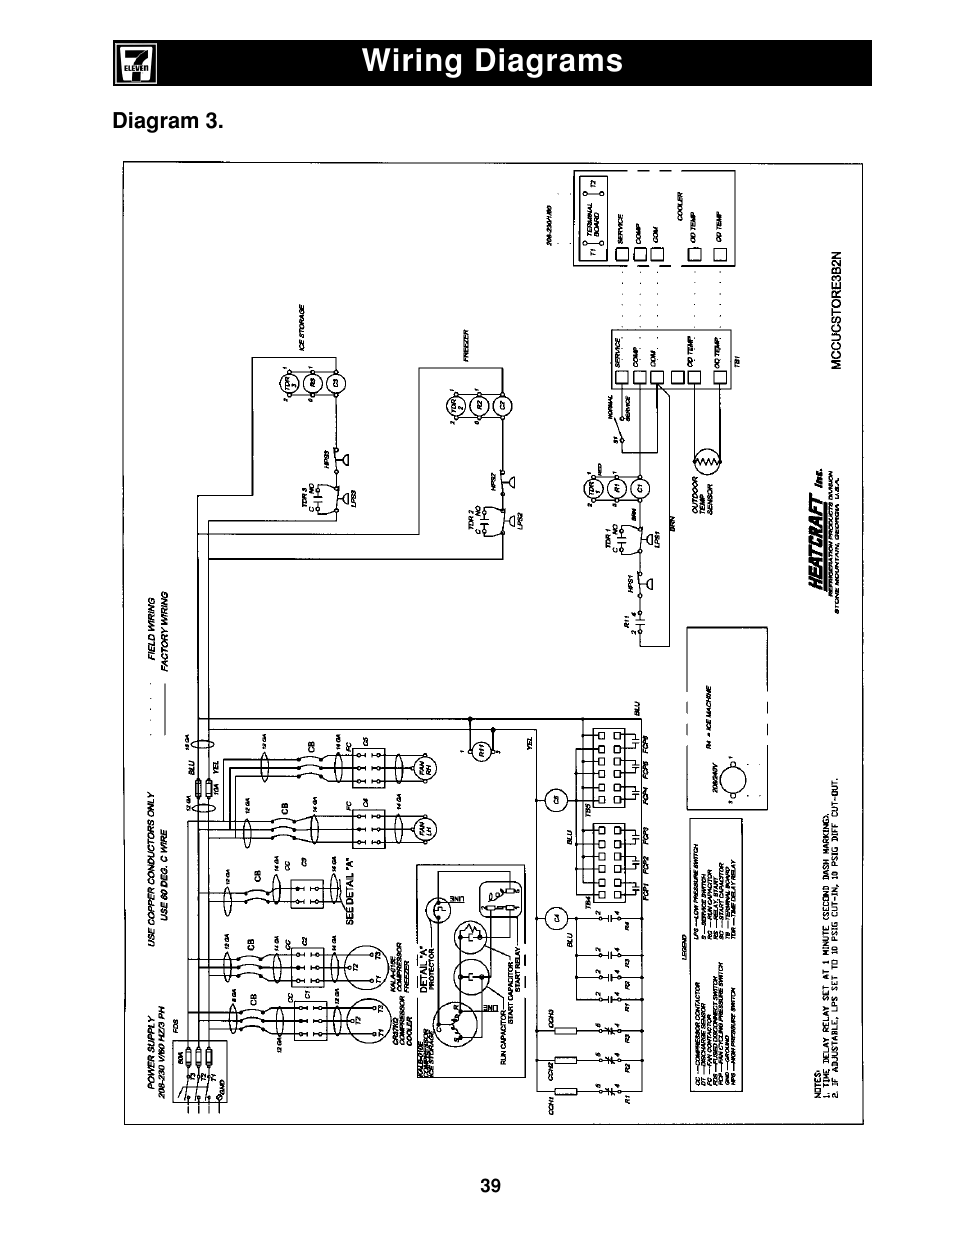 wiring diagrams heatcraft refrigeration products ii user manual heatcraft access 2 answers wiring diagrams heatcraft refrigeration products ii user manual page 39 48